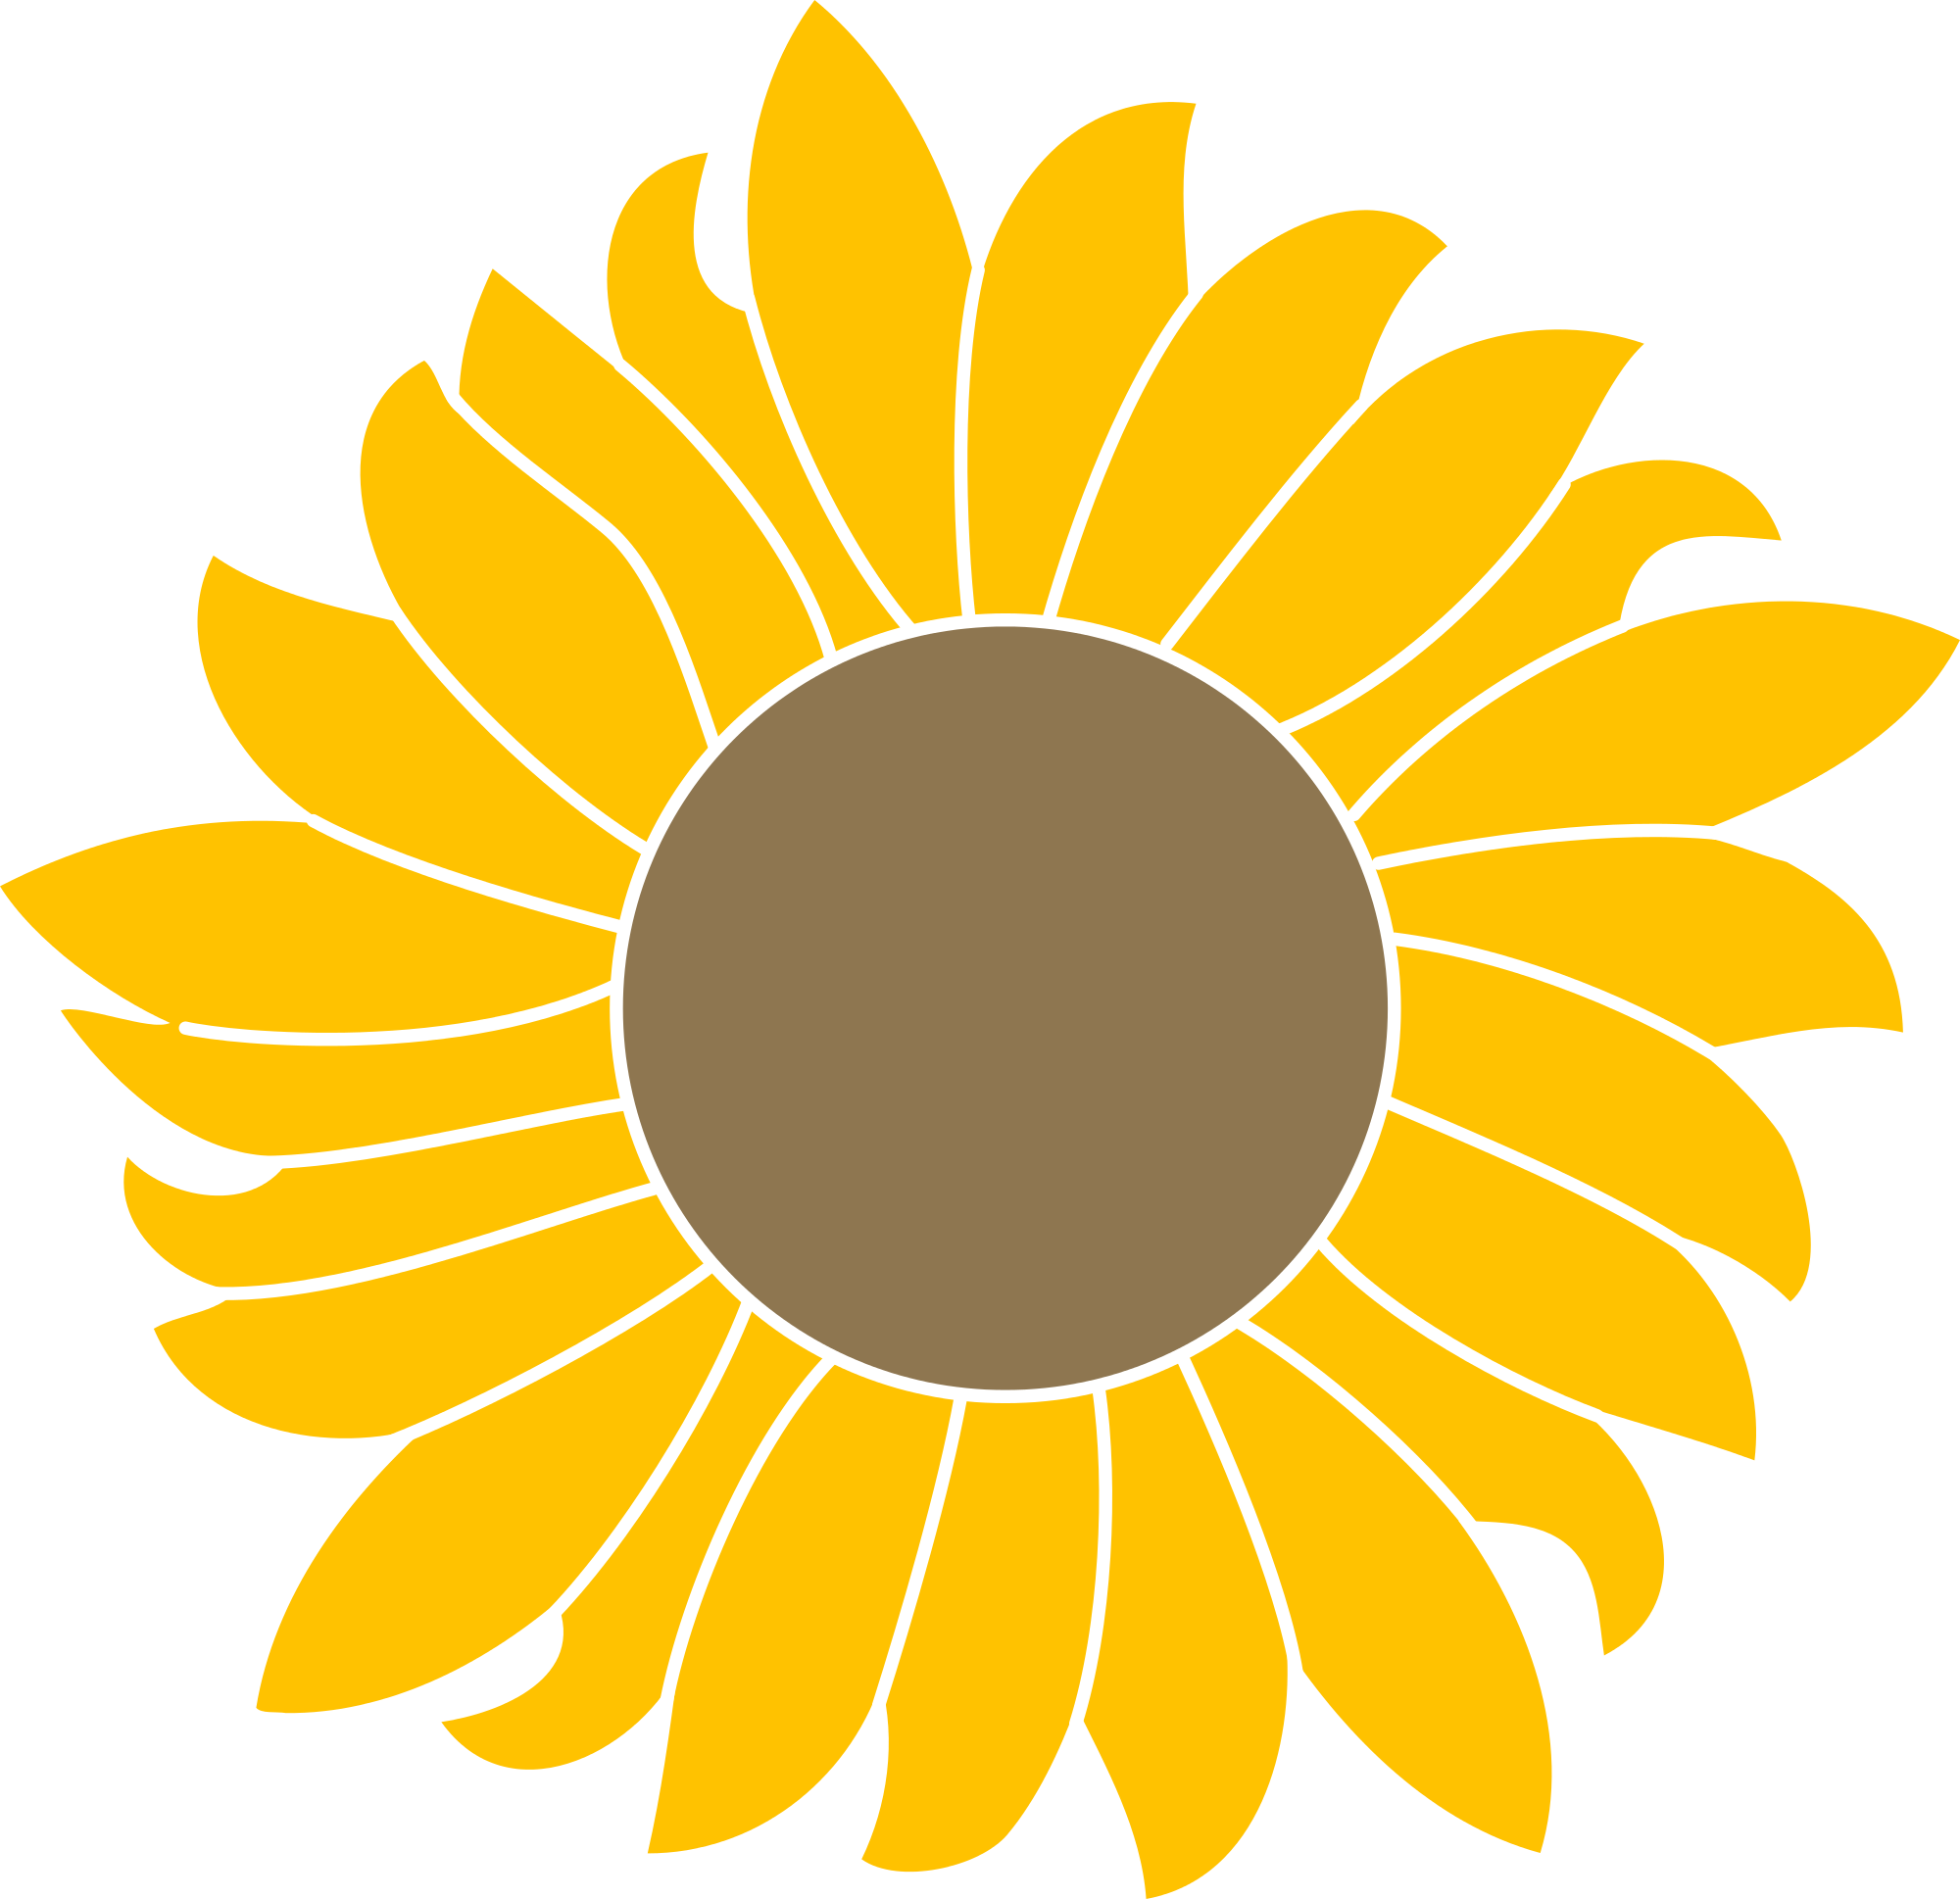 Sunflower logo png. Image from mediawiki reworked